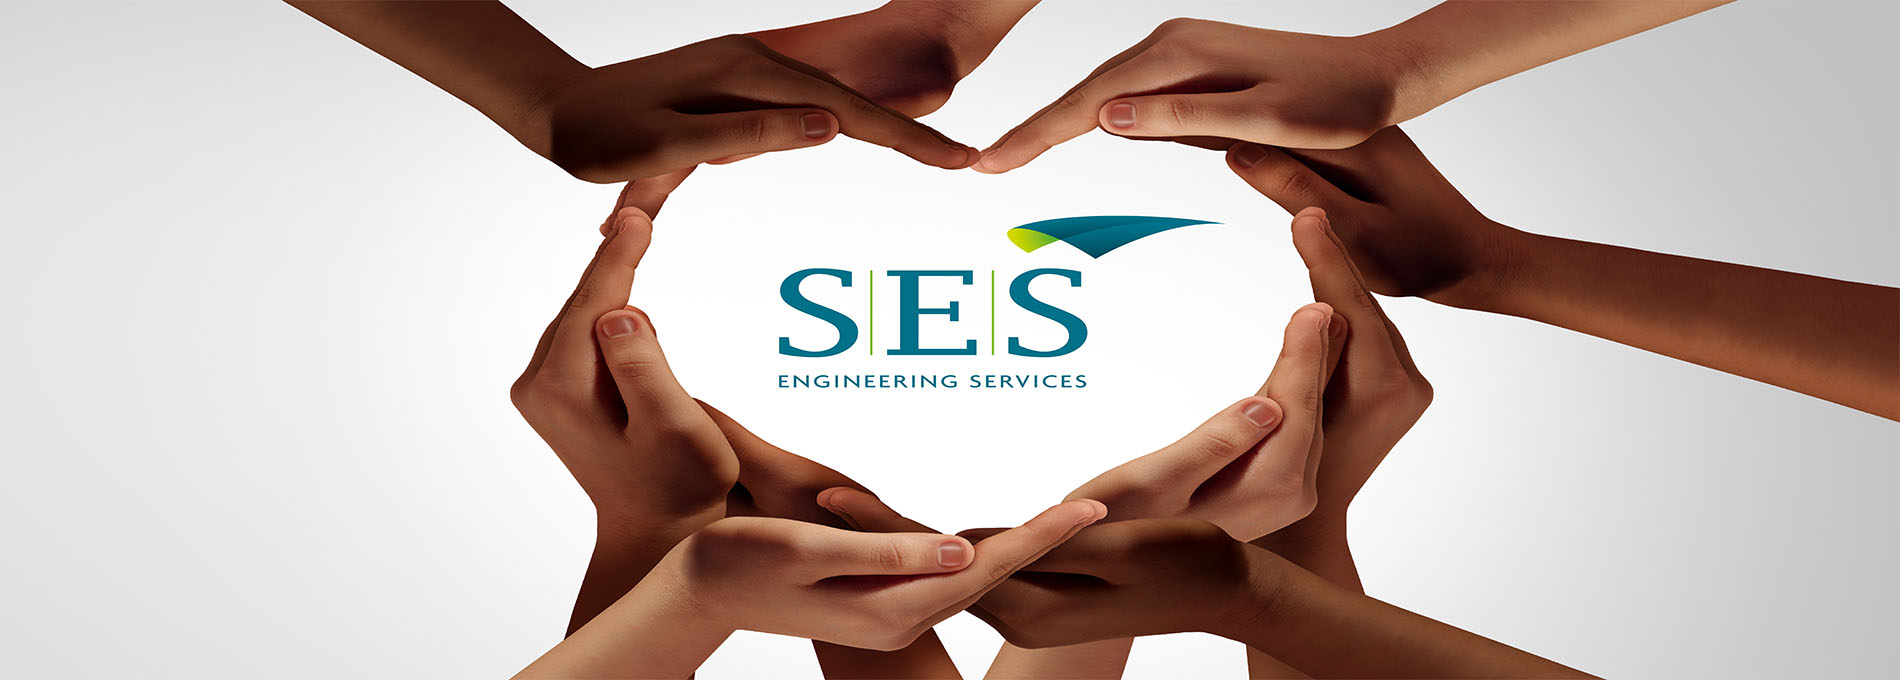 SES Heart Hands Image